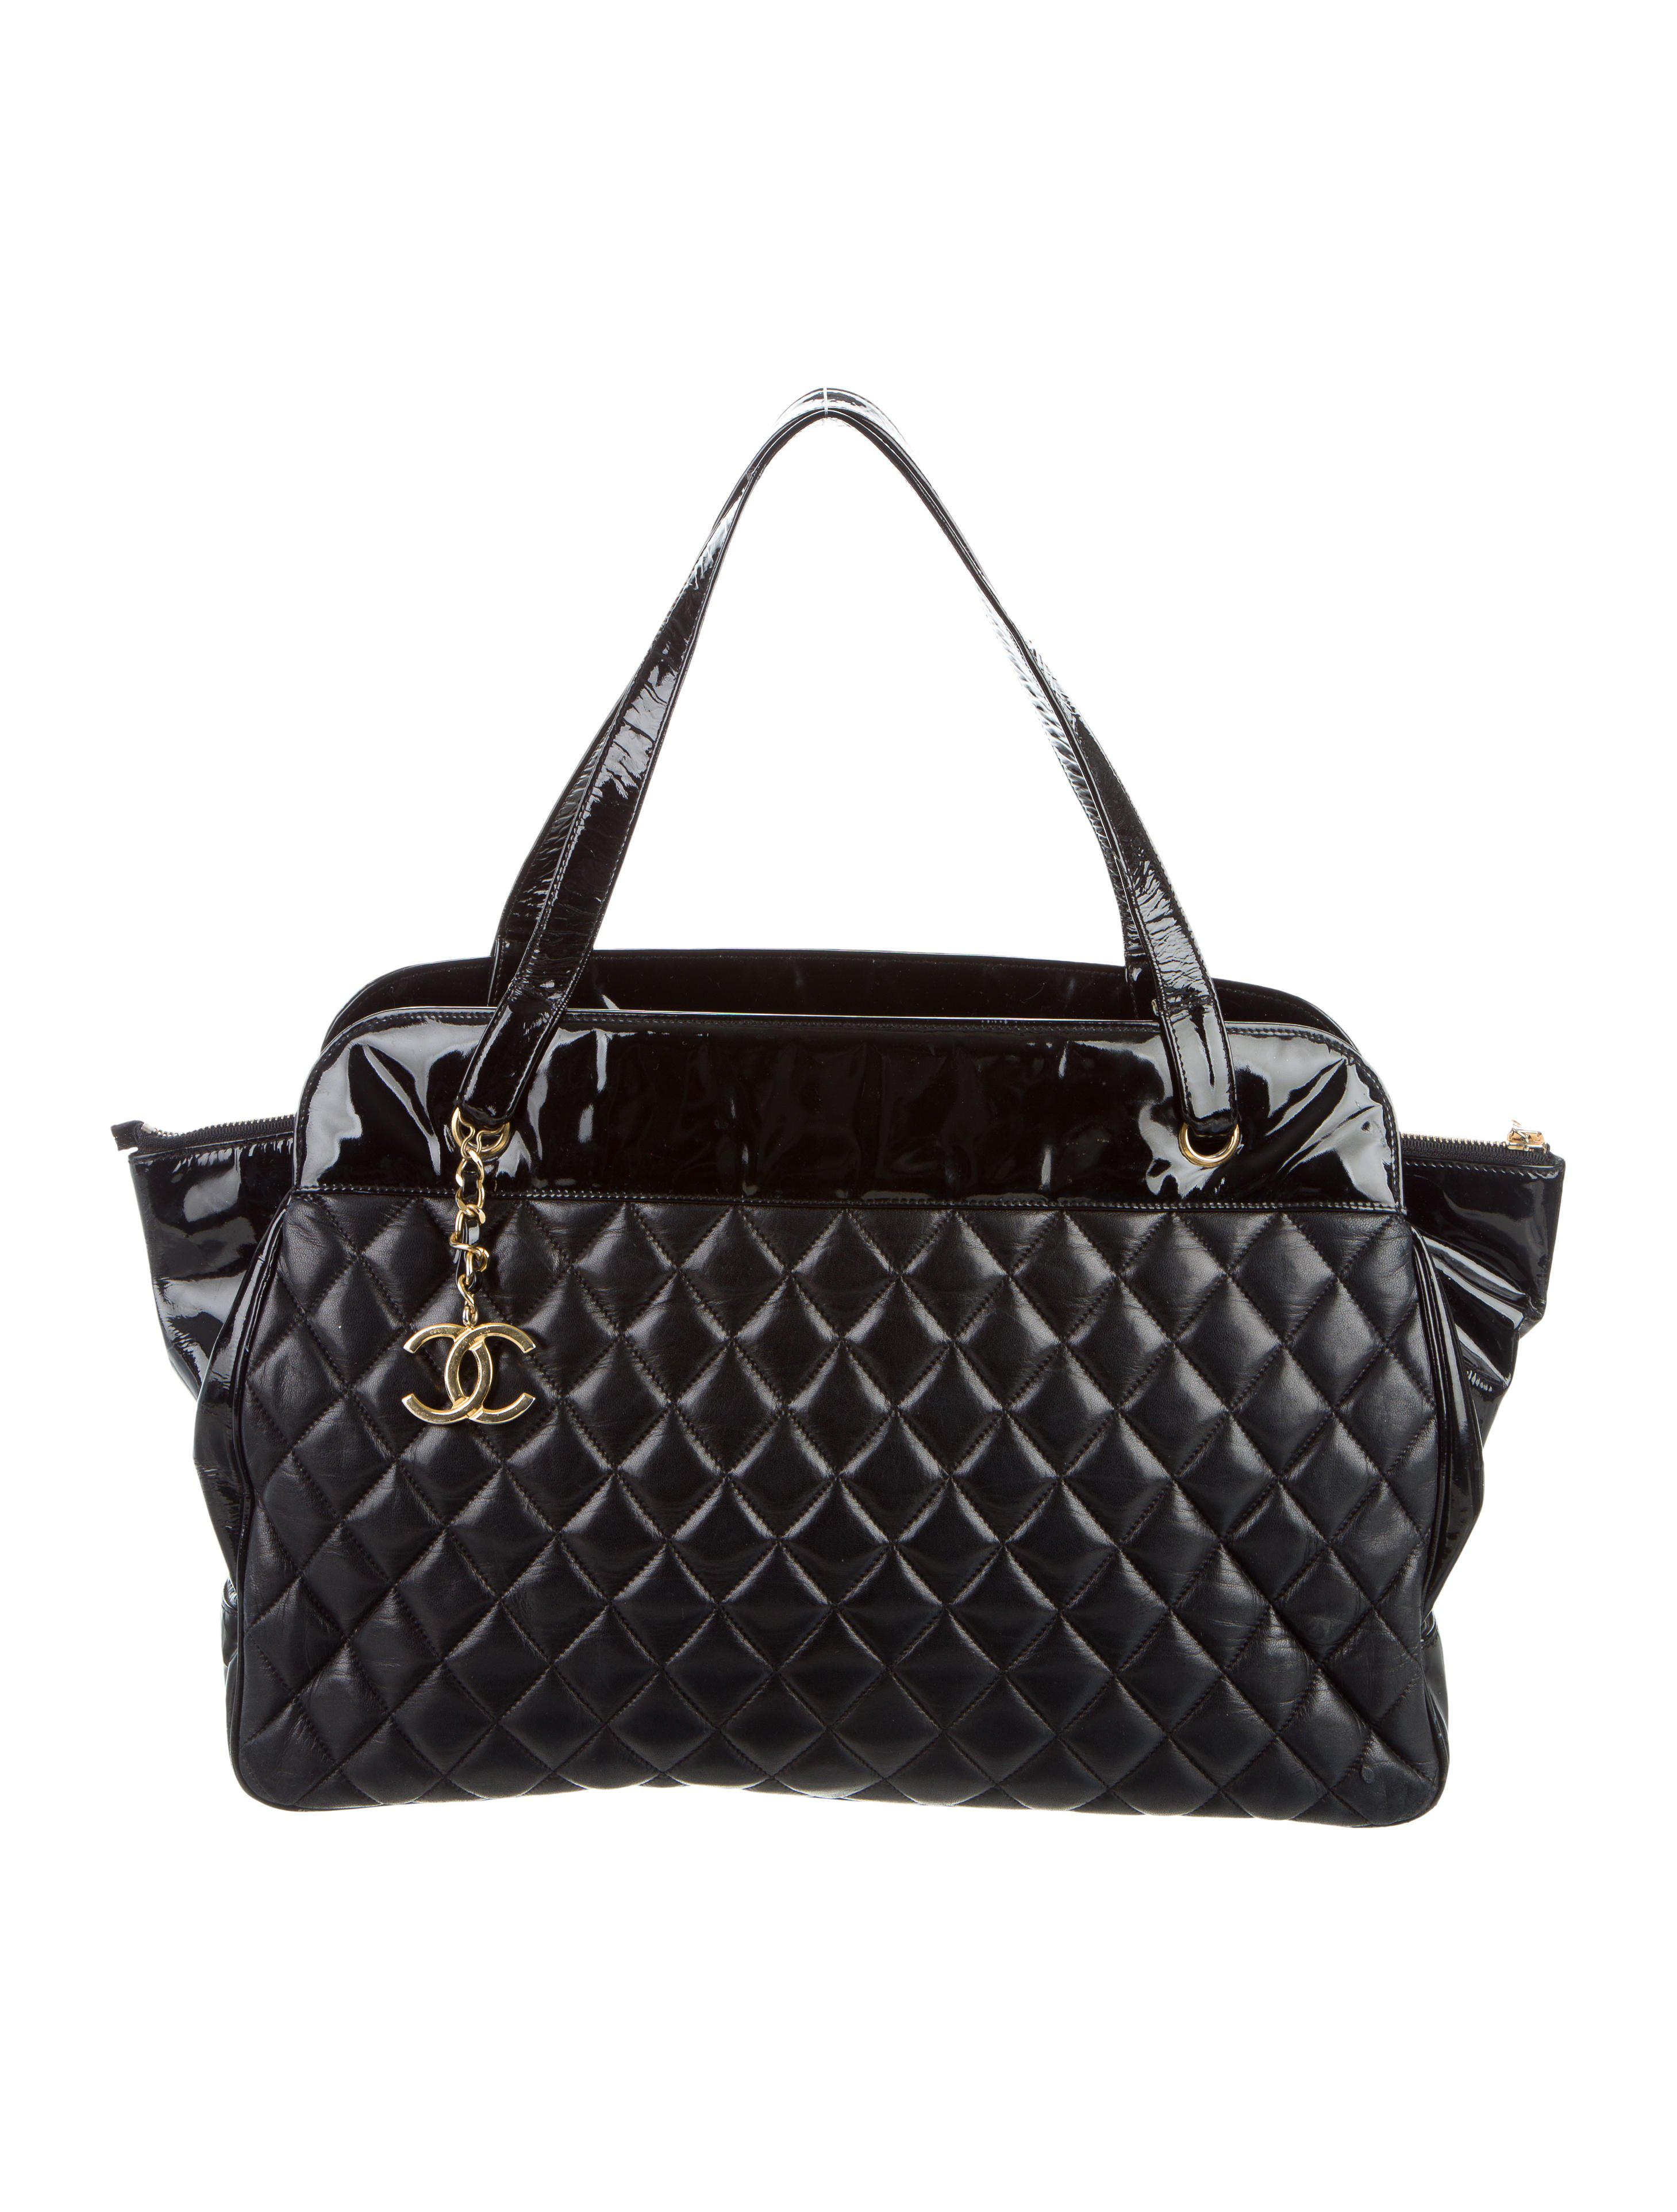 c0ac69ab54c2 Lyst - Chanel Quilted Shopper Tote Black in Metallic